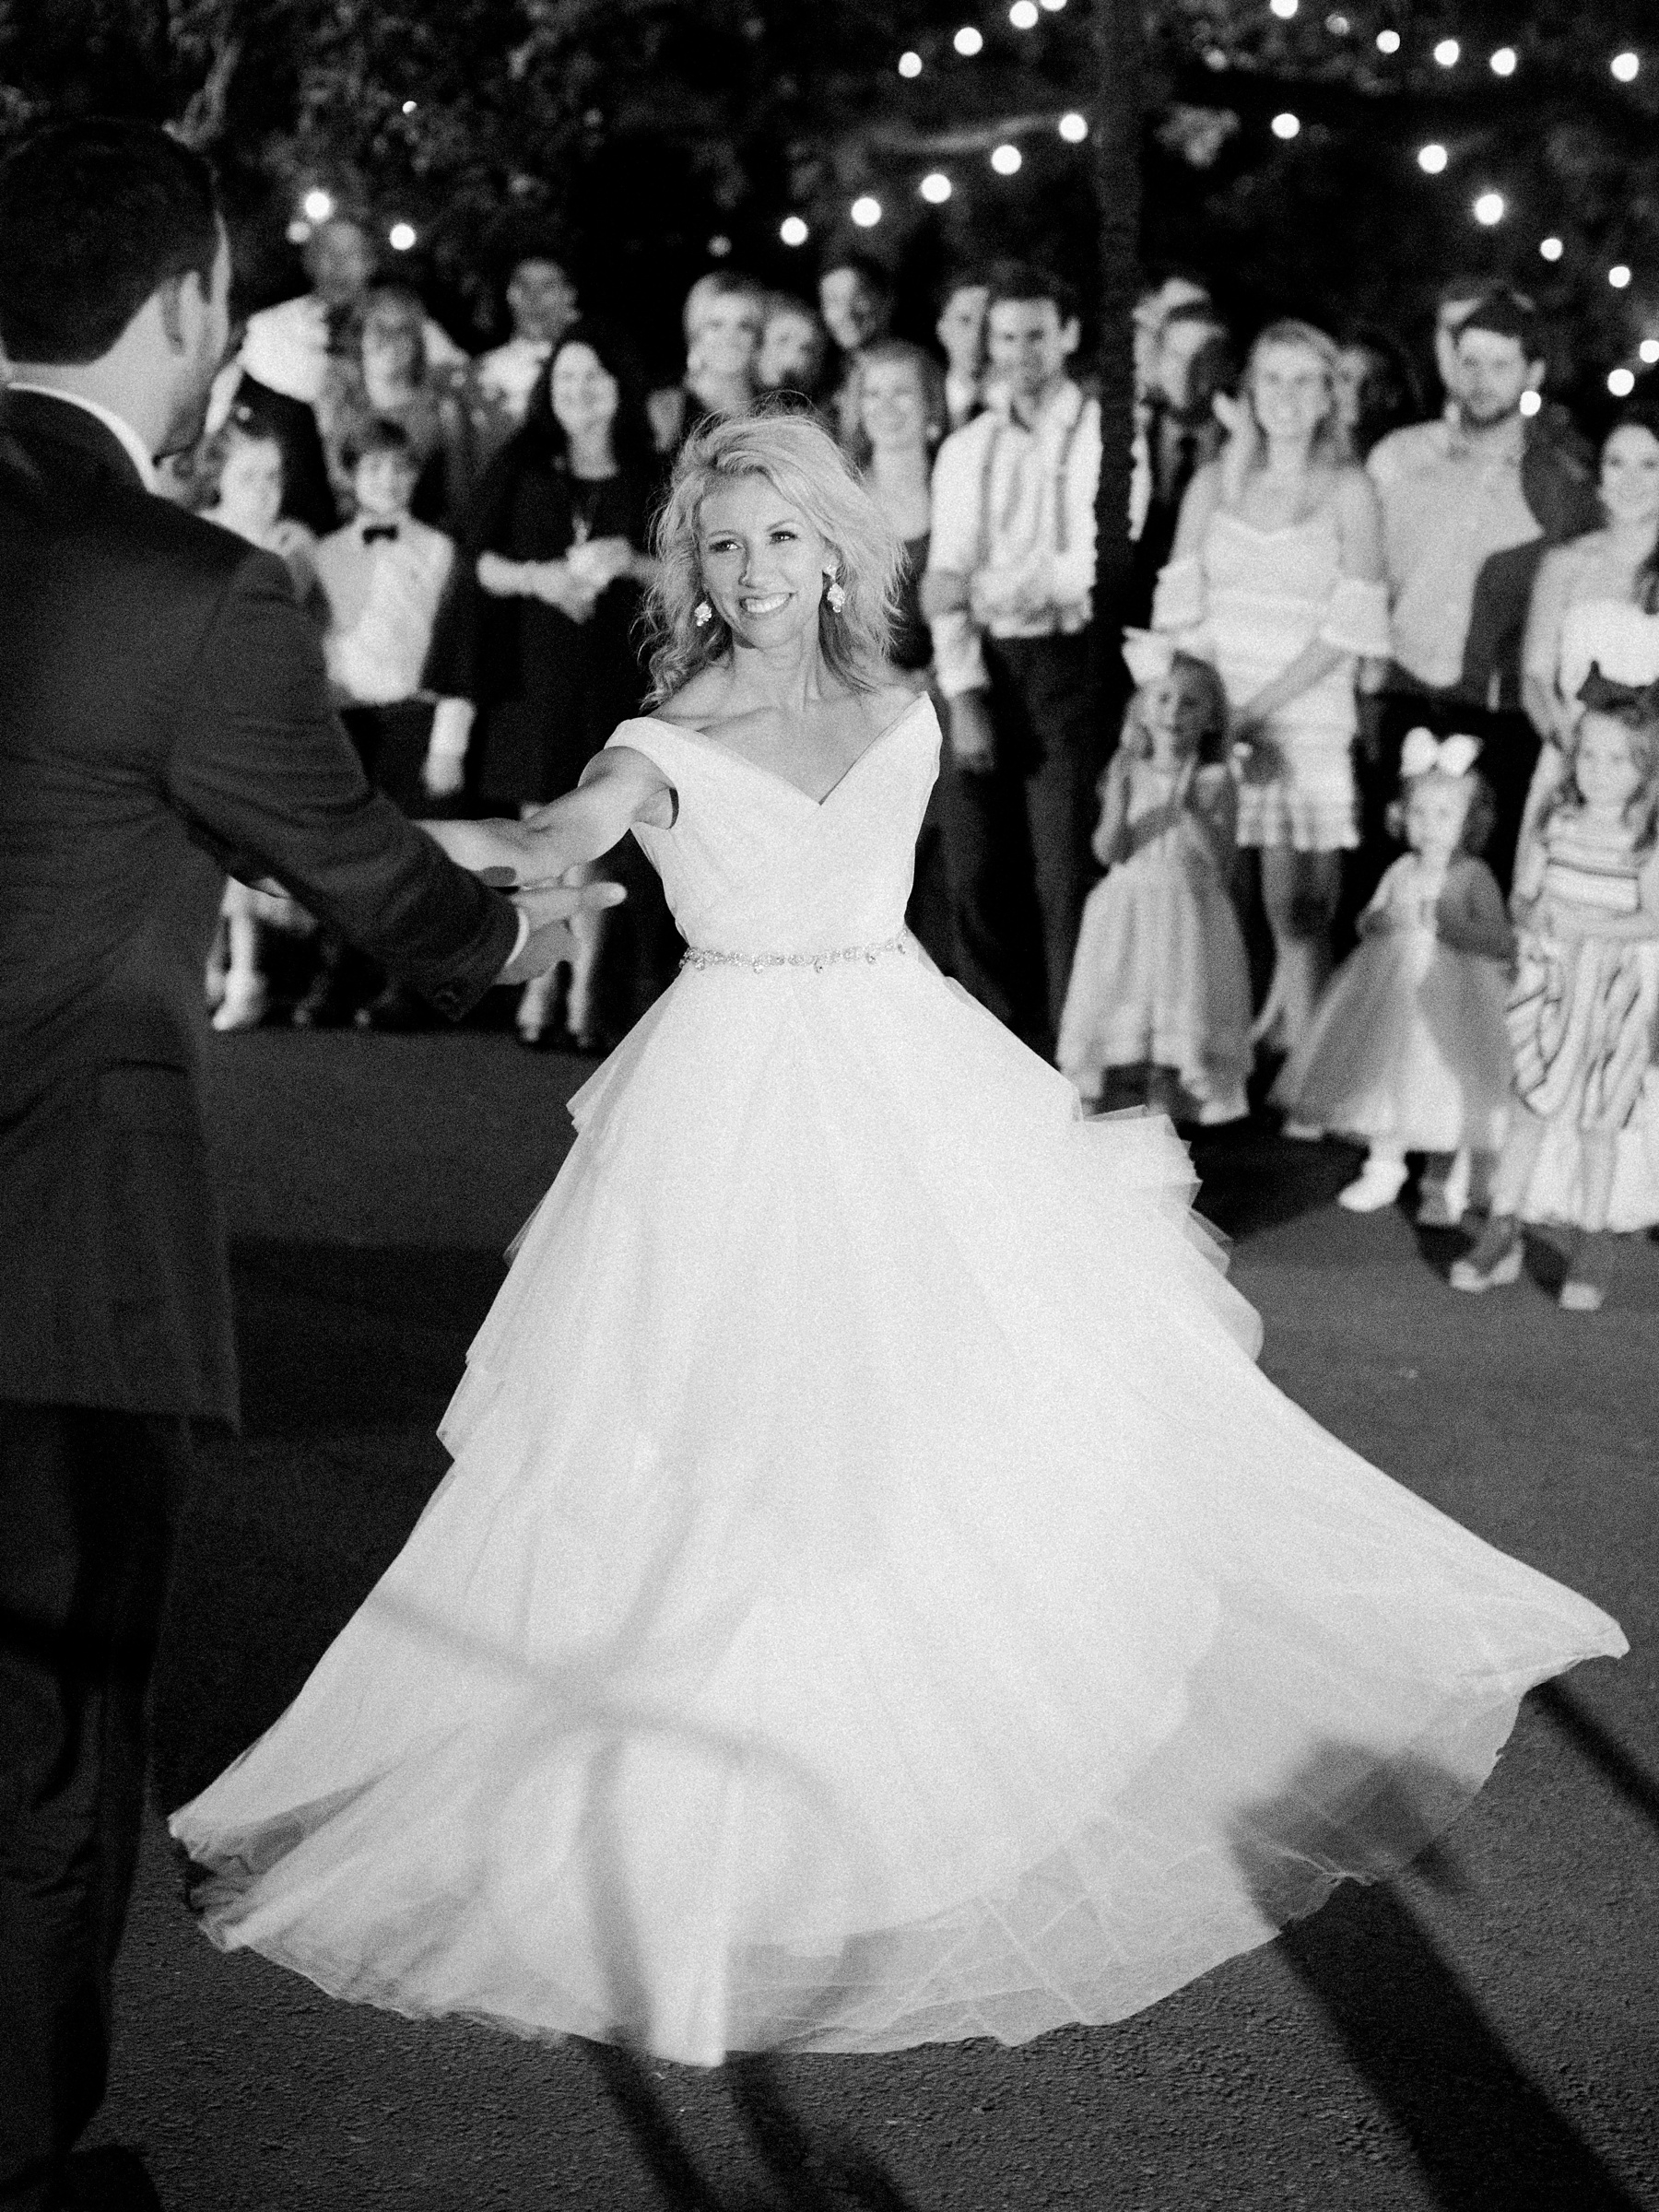 CMT Music City Jessica Mack and Andreas Plackis Wedding_1547.jpg